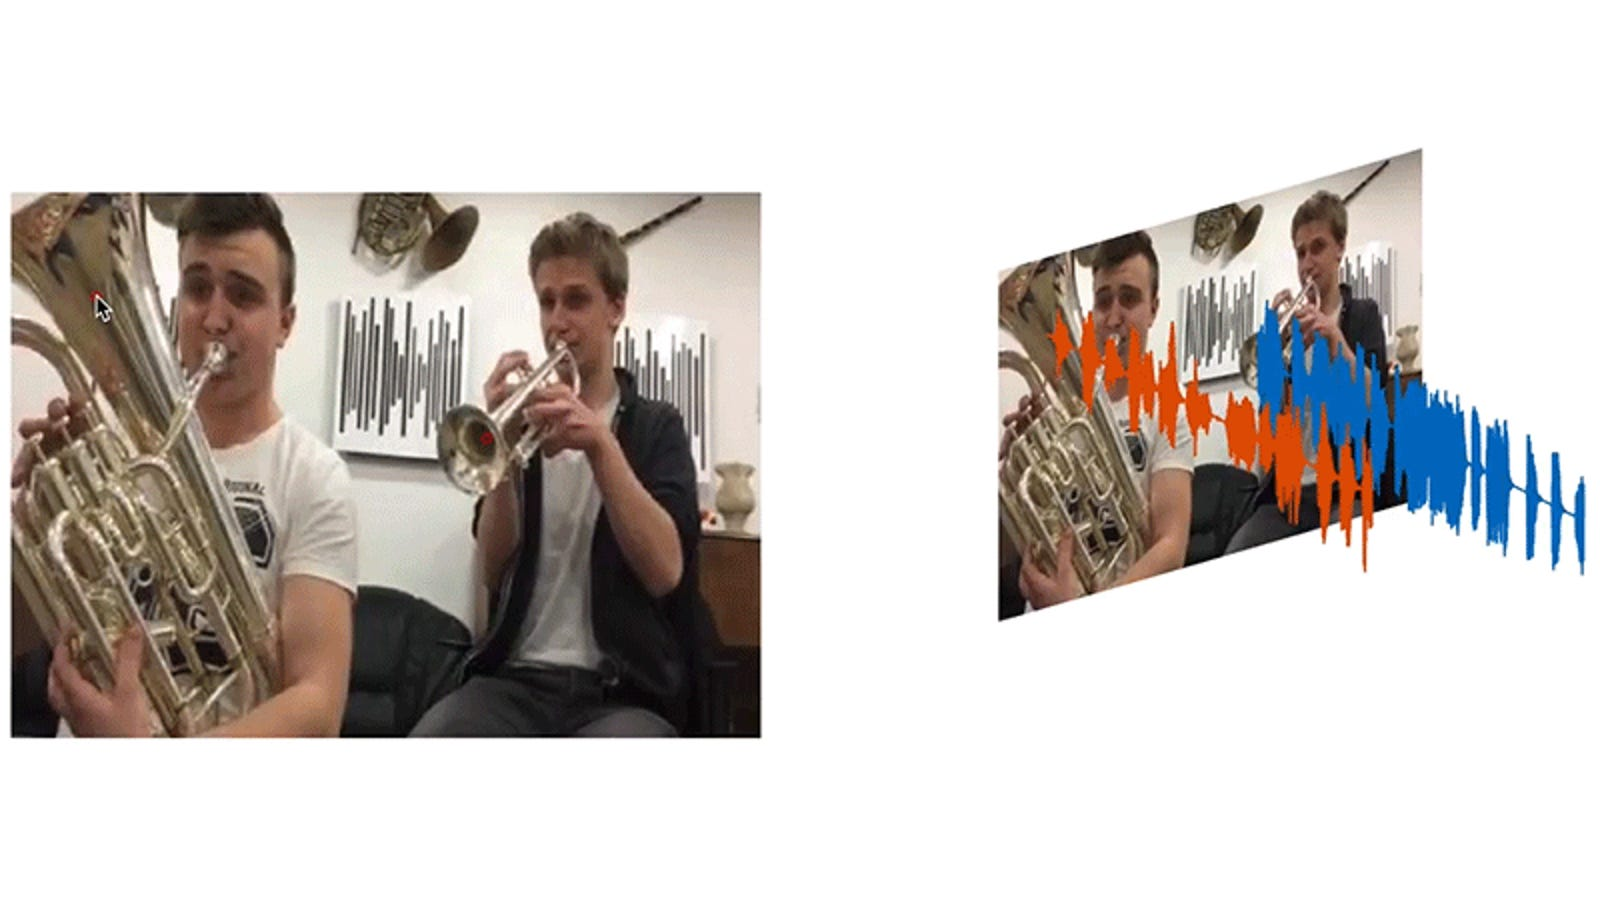 MIT's New AI-Powered Software Can Extract Individual Instruments From Videos With a Single Click